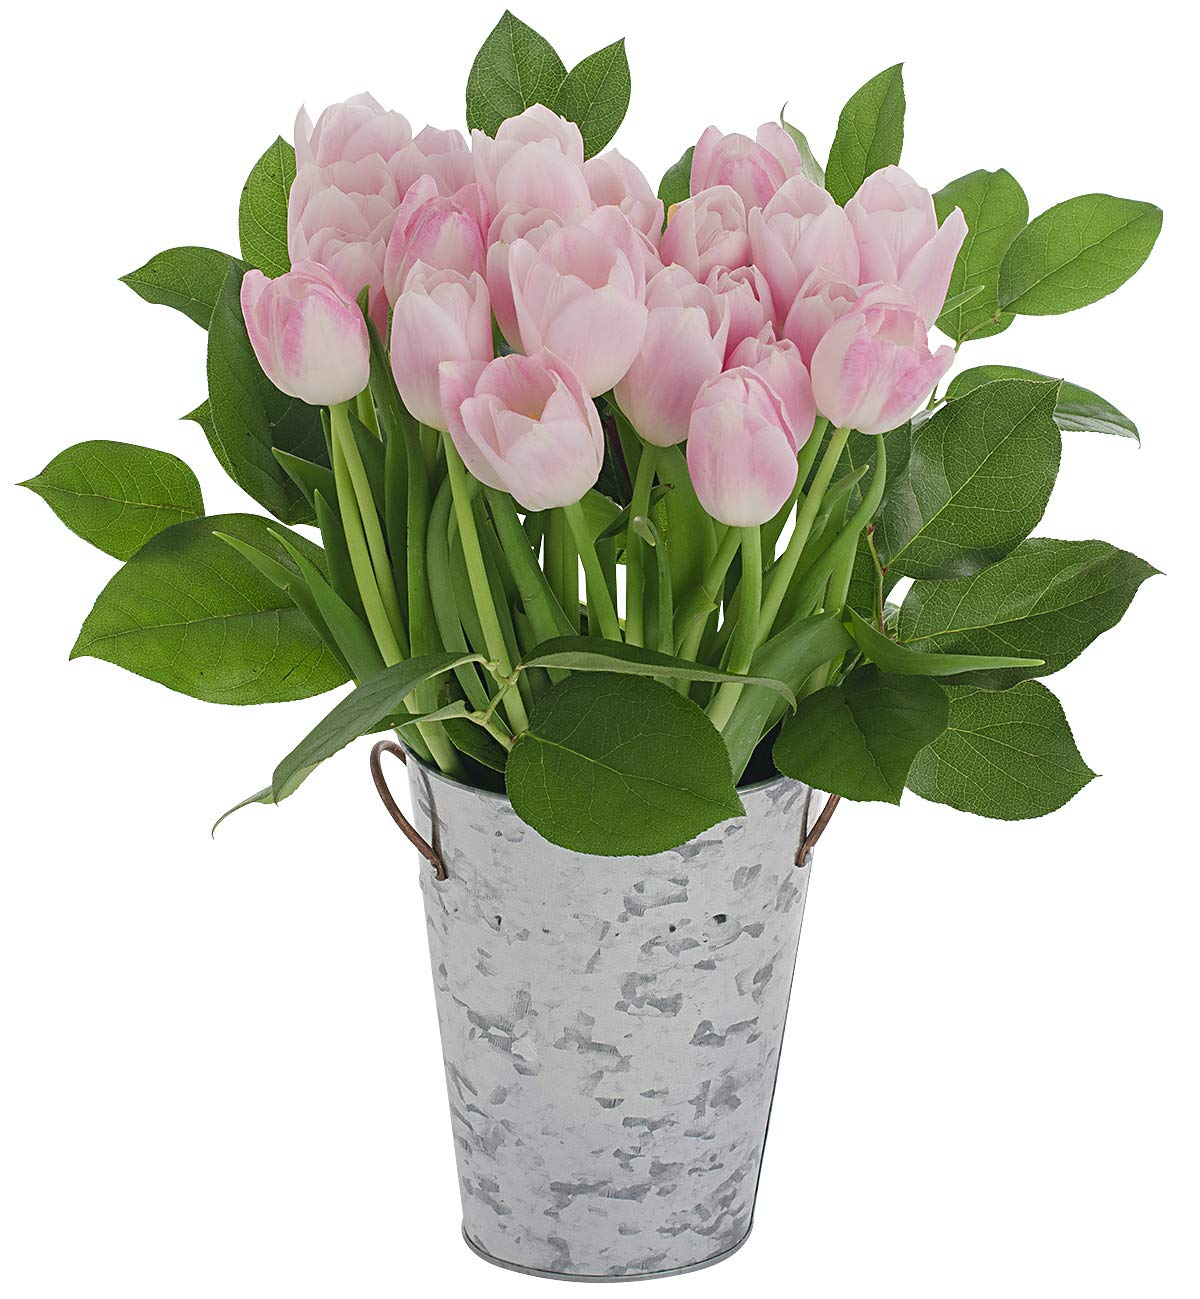 Stargazer Barn Blushing Bouquet 2 Dozen Light Pink Tulips with French Bucket Style Vase